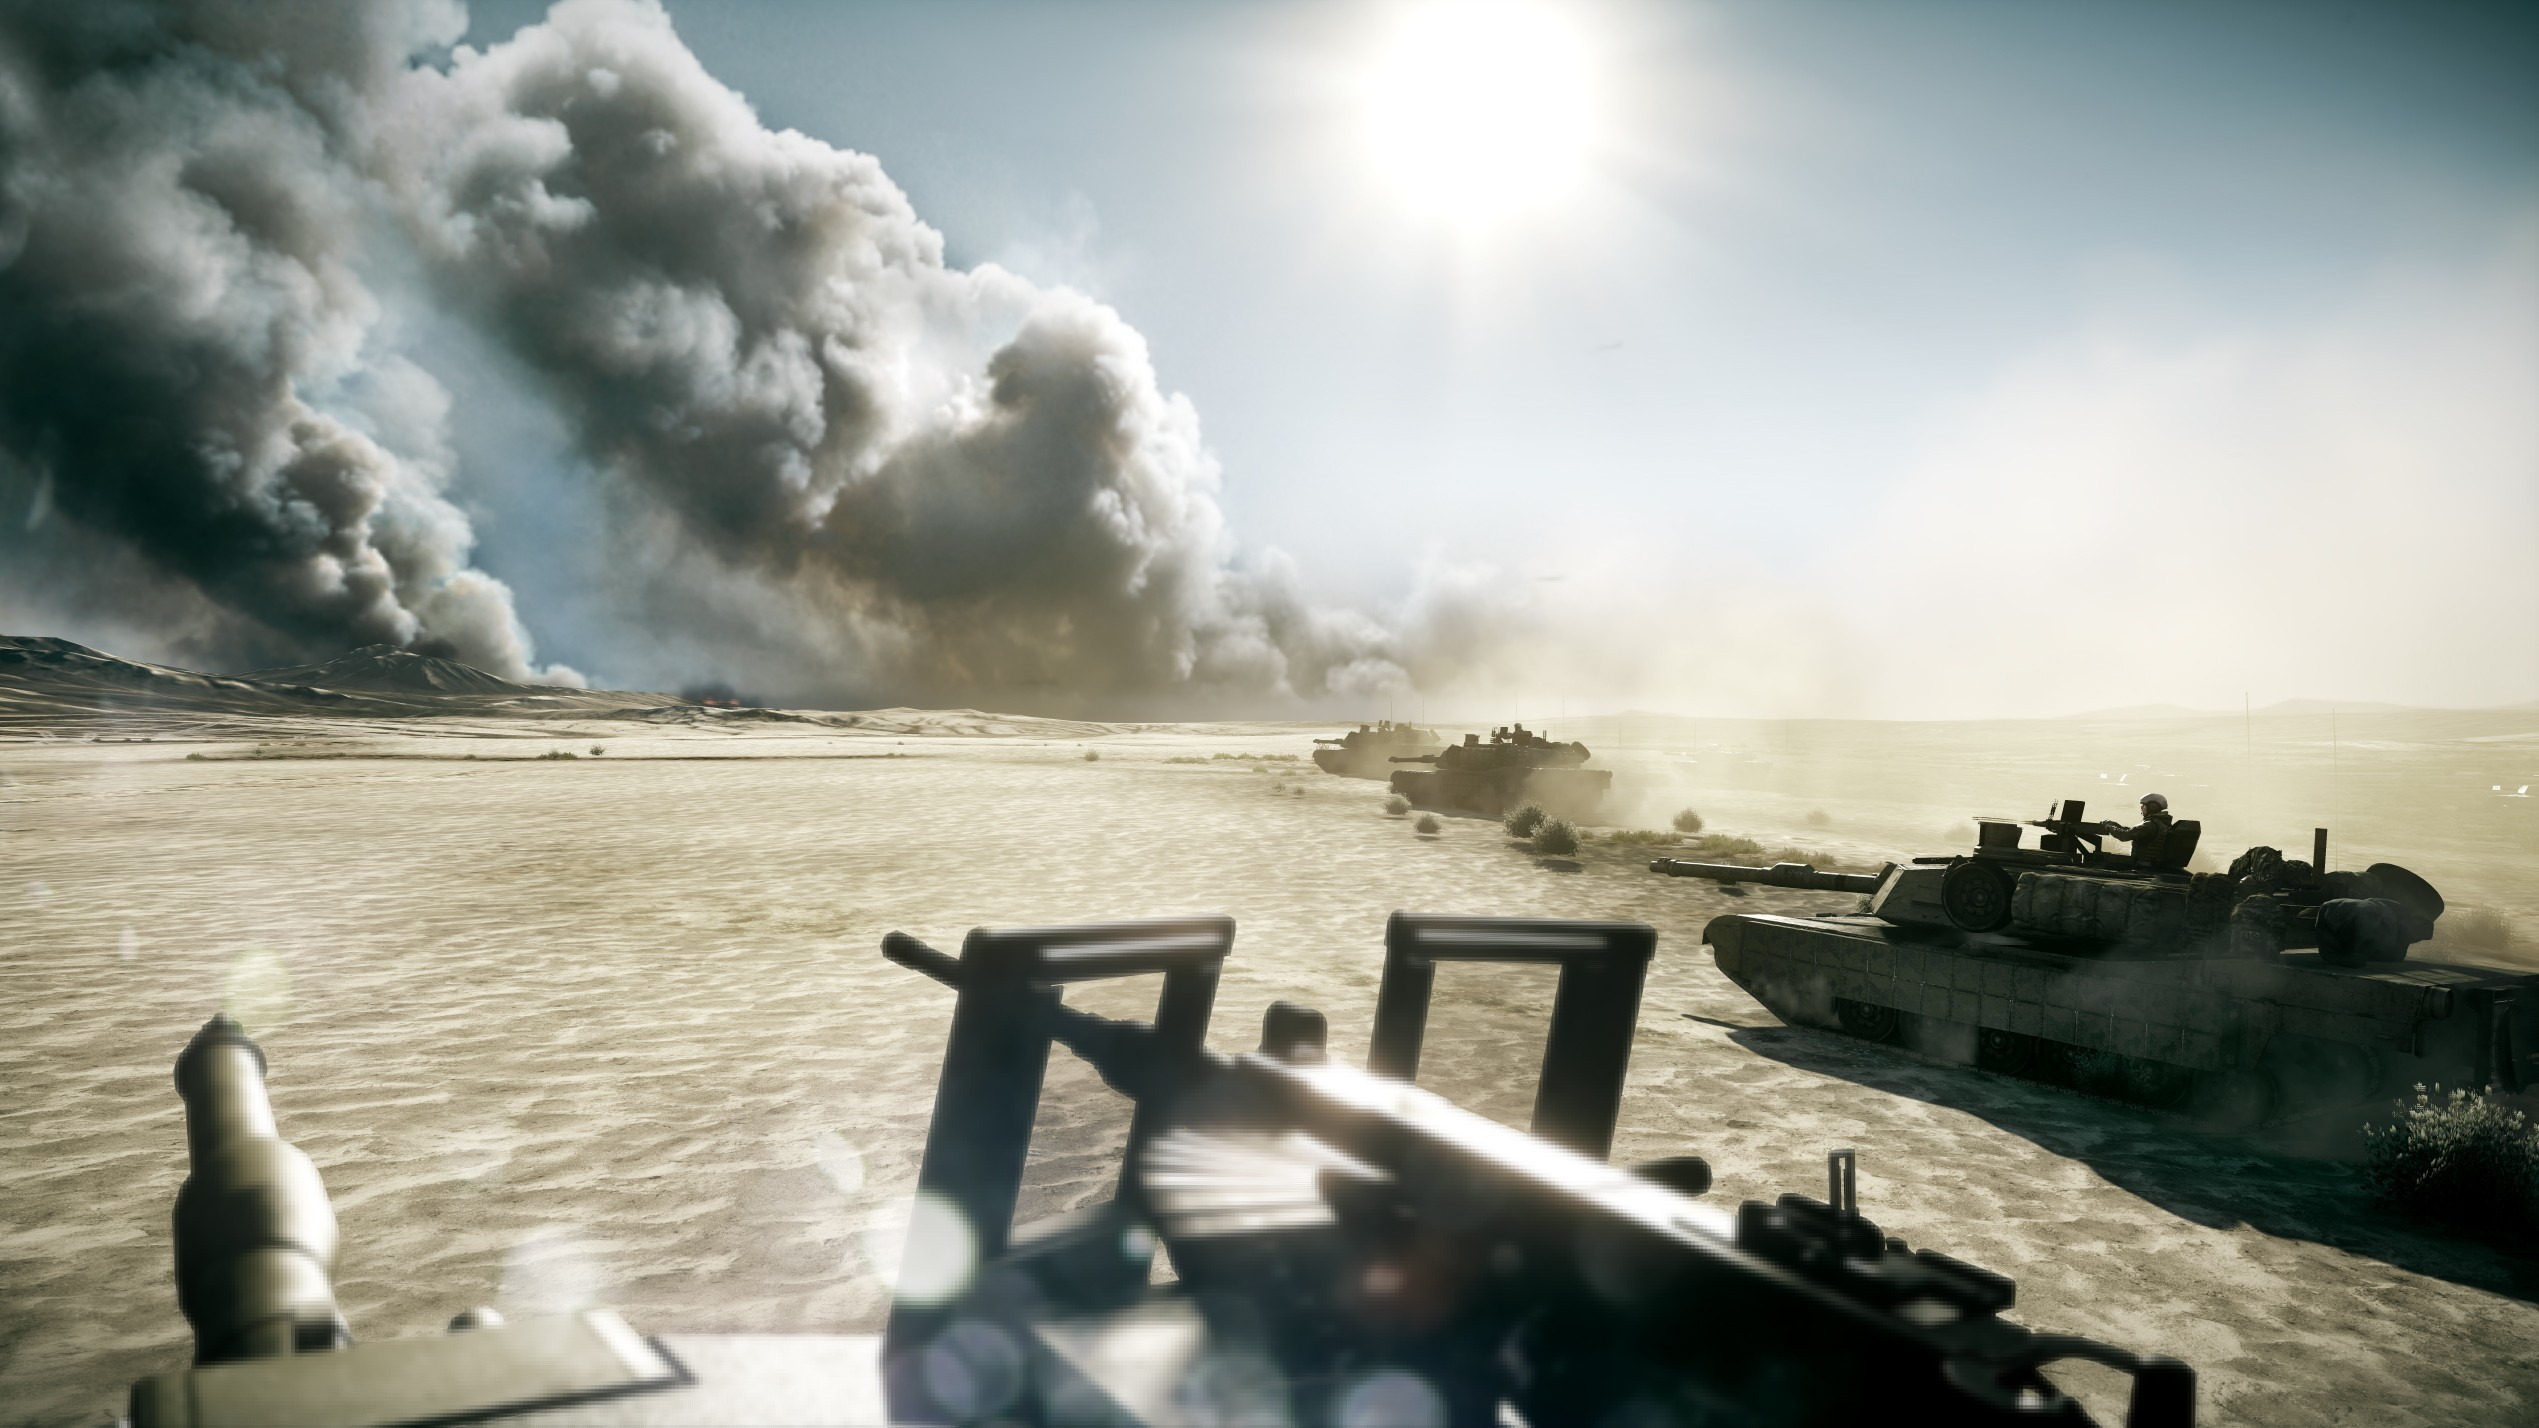 tanks battlefield 3 HD Wallpaper